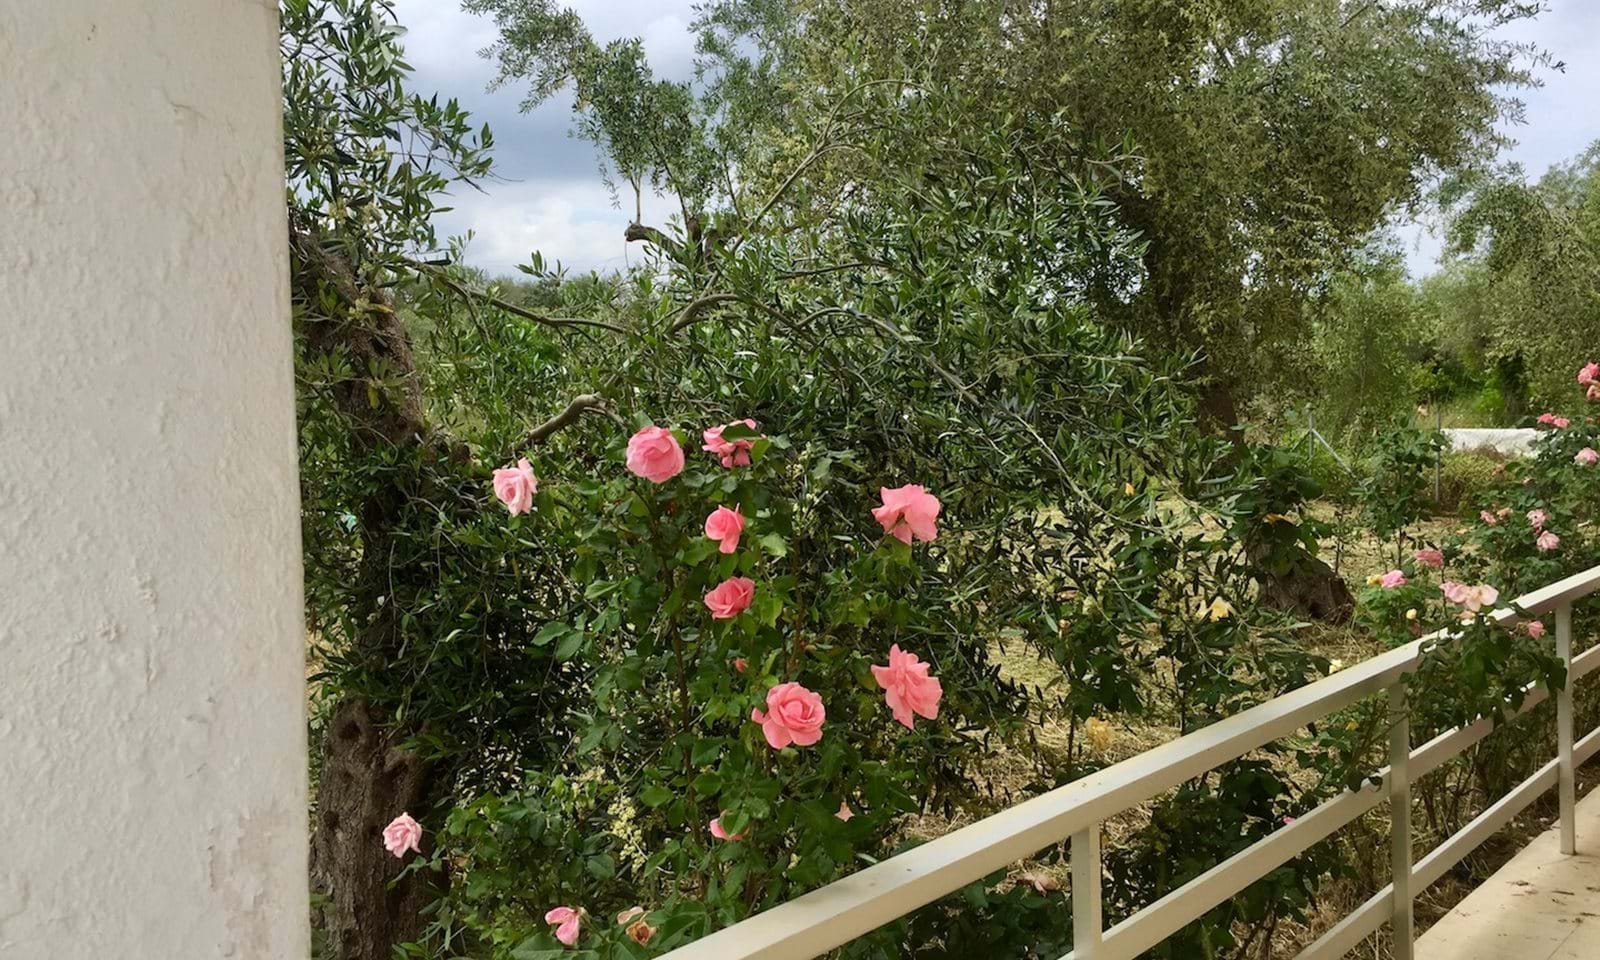 Roses at the entry of the lower level apartments to one building